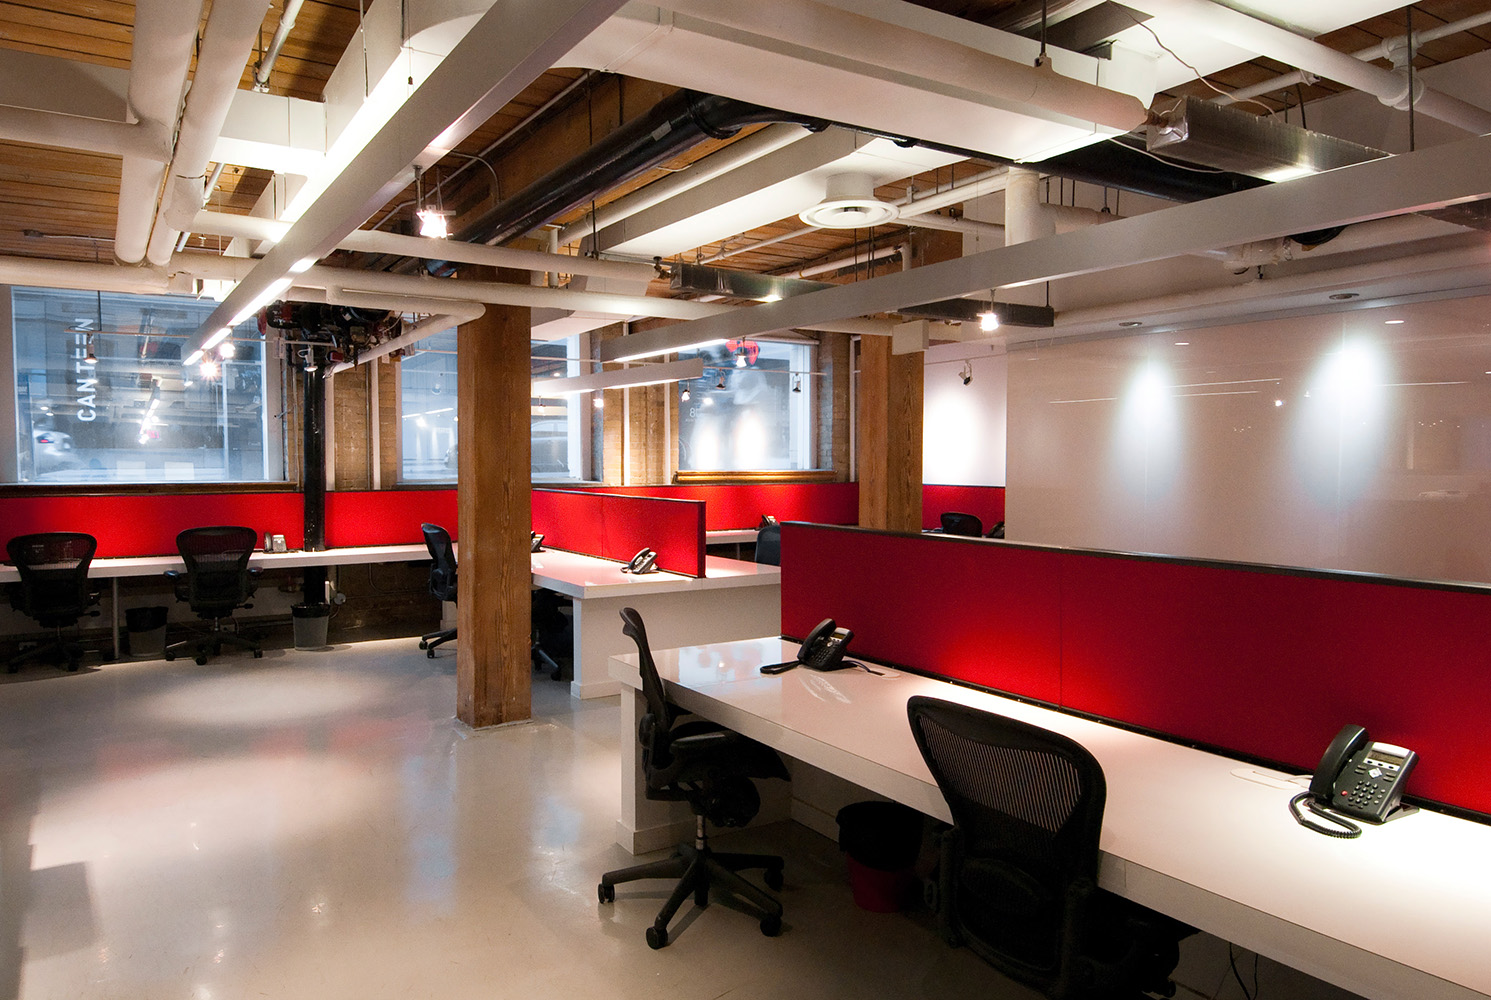 Open office space in Timber framed Toronto office building